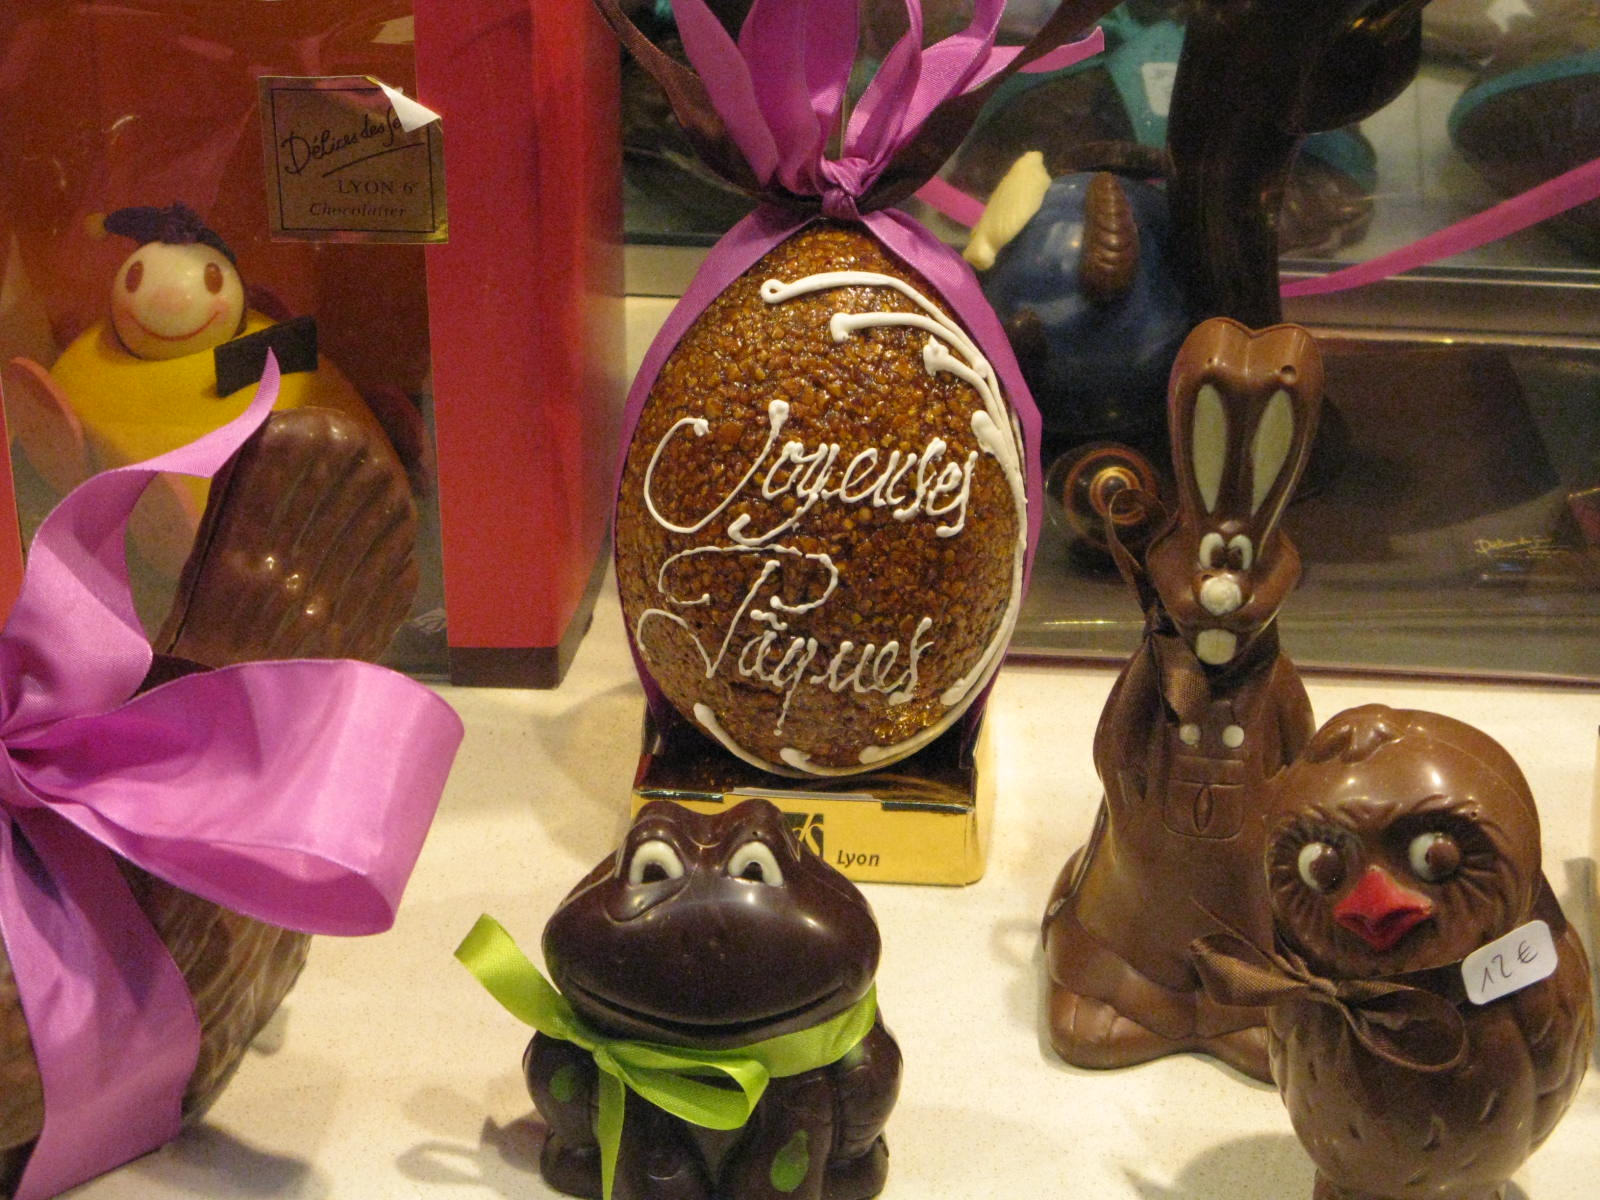 Sweet chocolate creatures to make the window display more soft for the Easter.